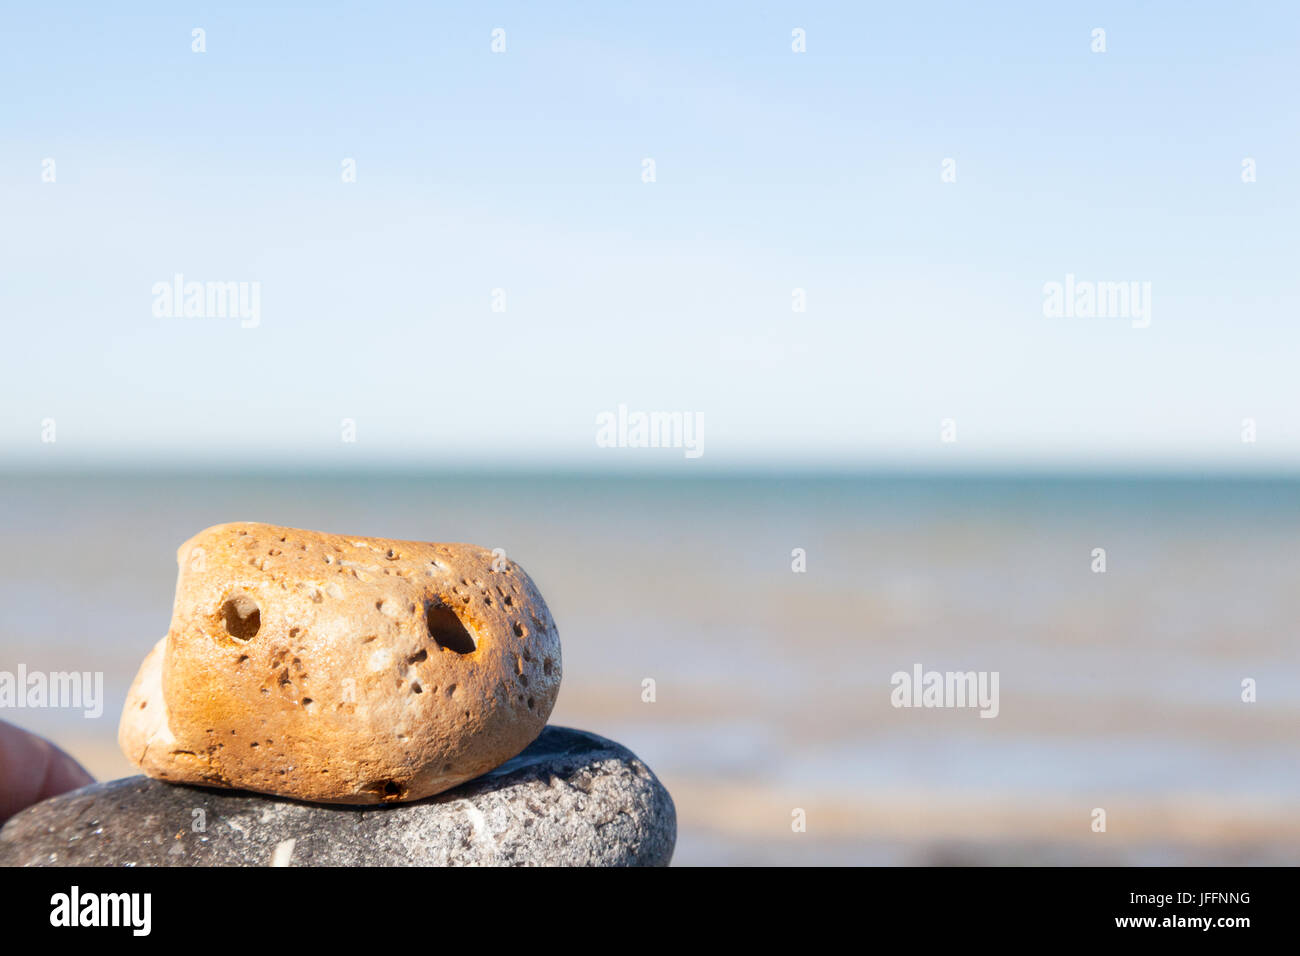 A cute 'pet rock' at the seaside - Stock Image